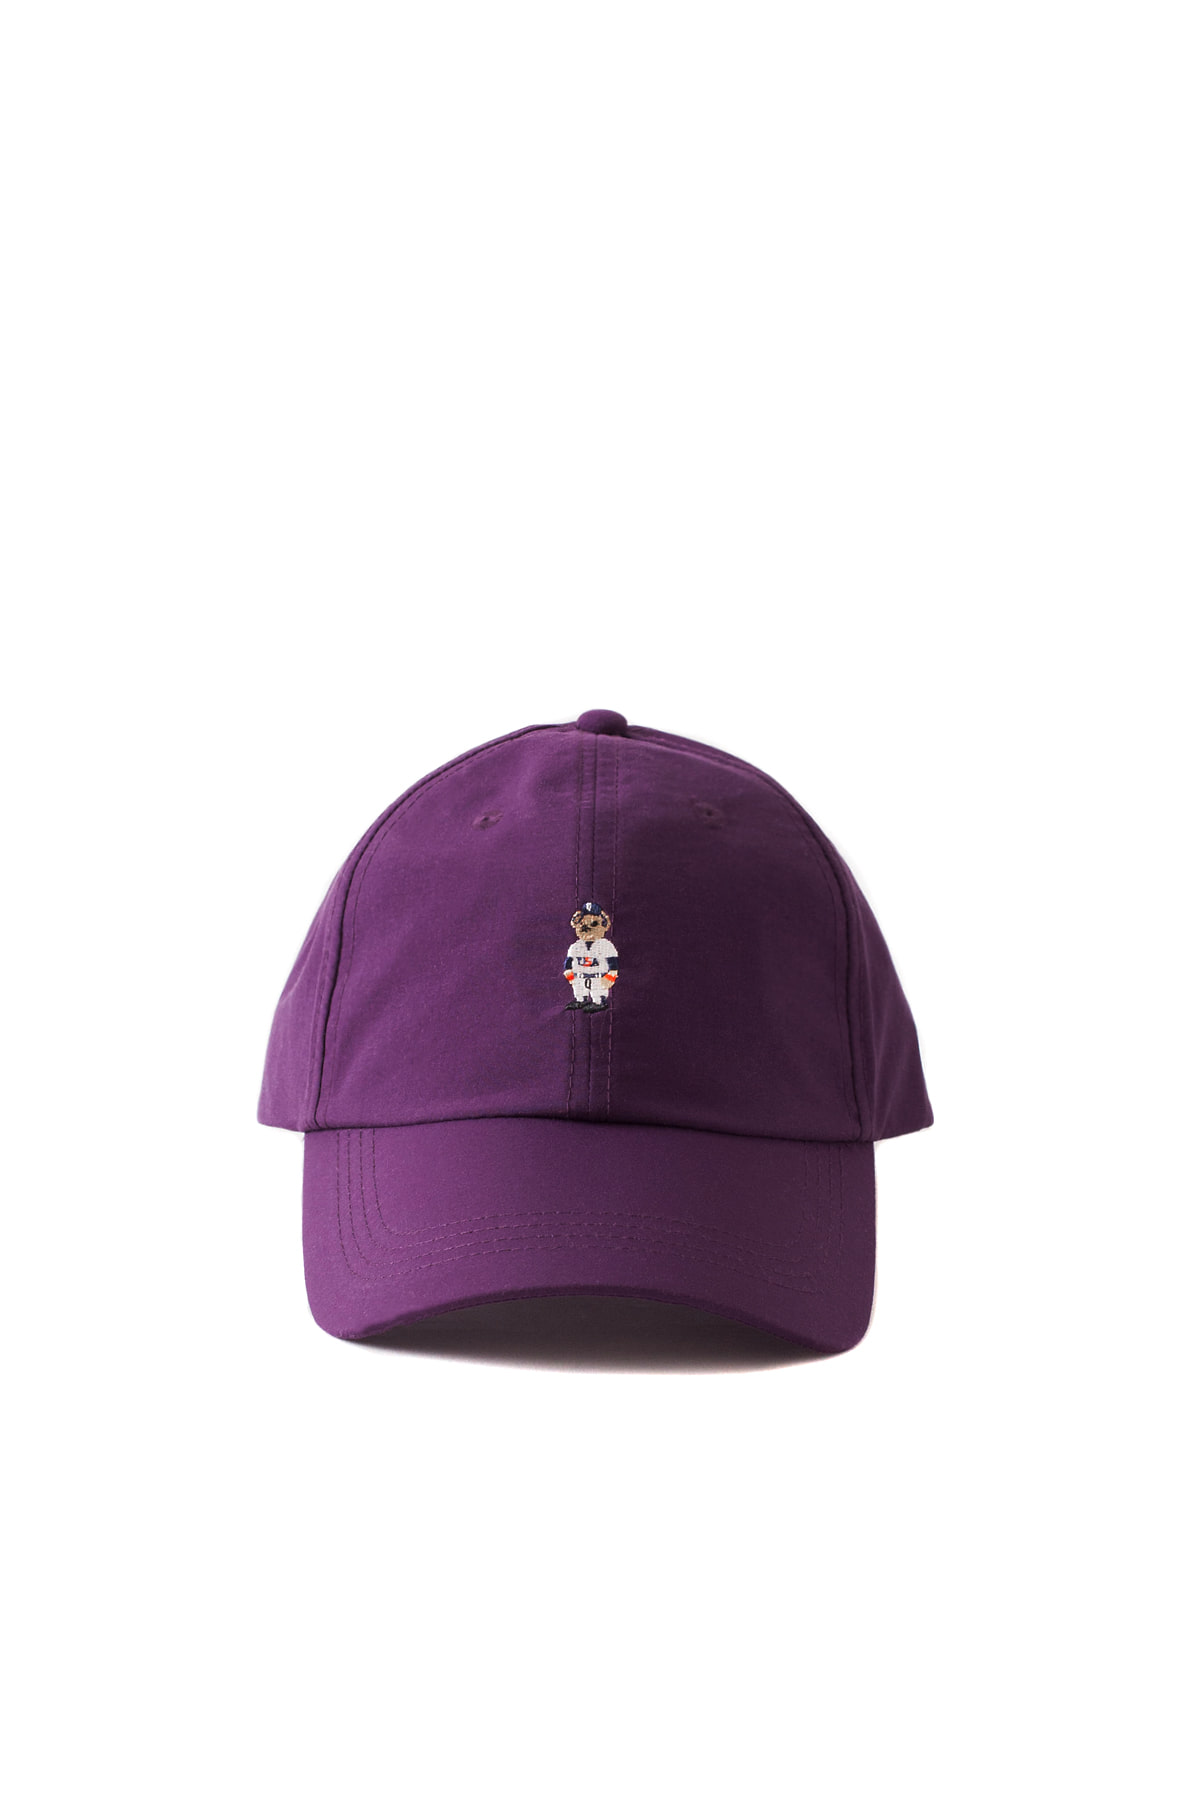 Infielder Design : Bear Cap (Purple)